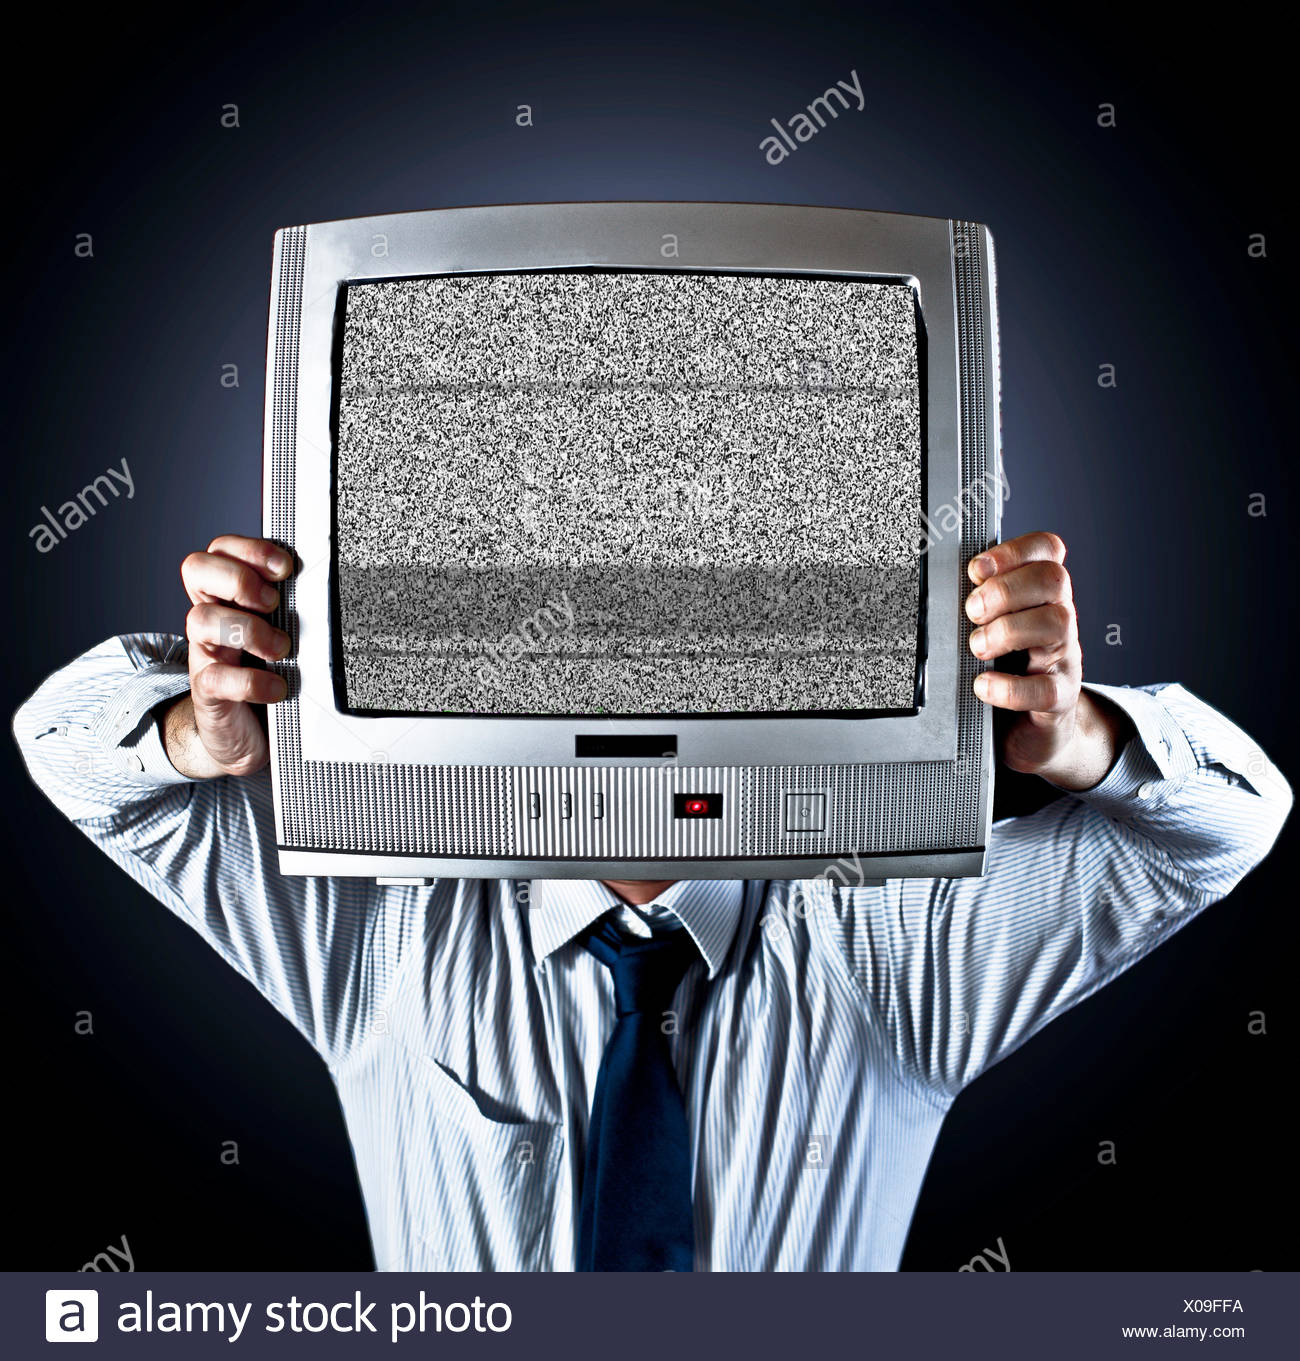 Man holding old fashioned television in front of his face - Stock Image